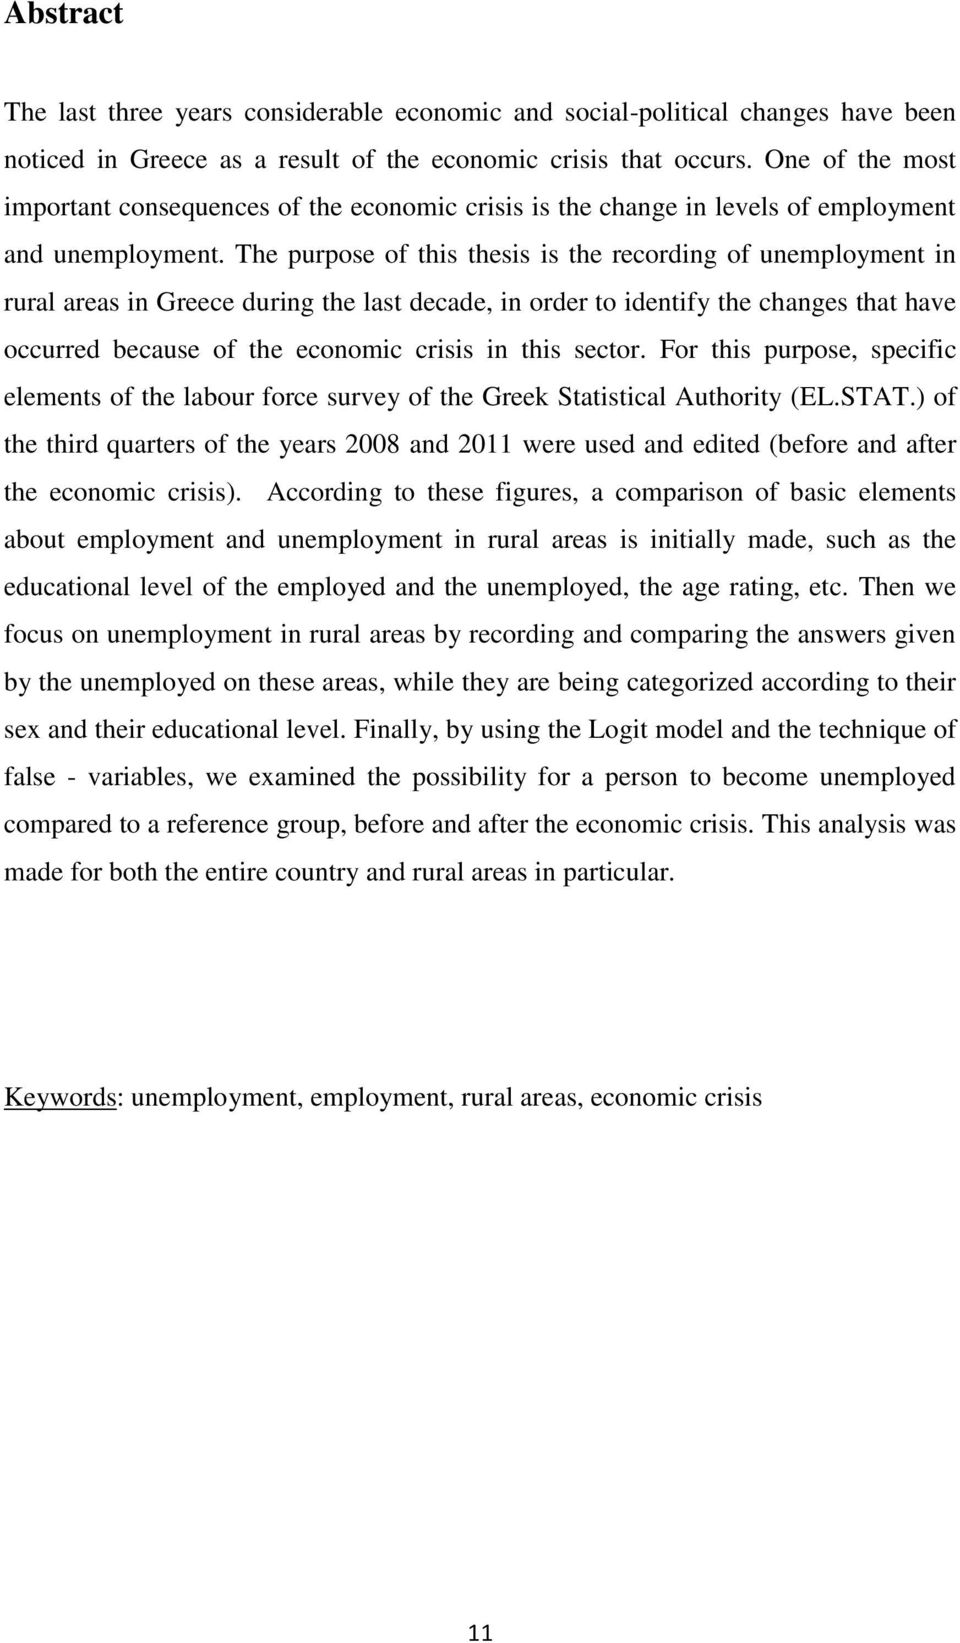 The purpose of this thesis is the recording of unemployment in rural areas in Greece during the last decade, in order to identify the changes that have occurred because of the economic crisis in this